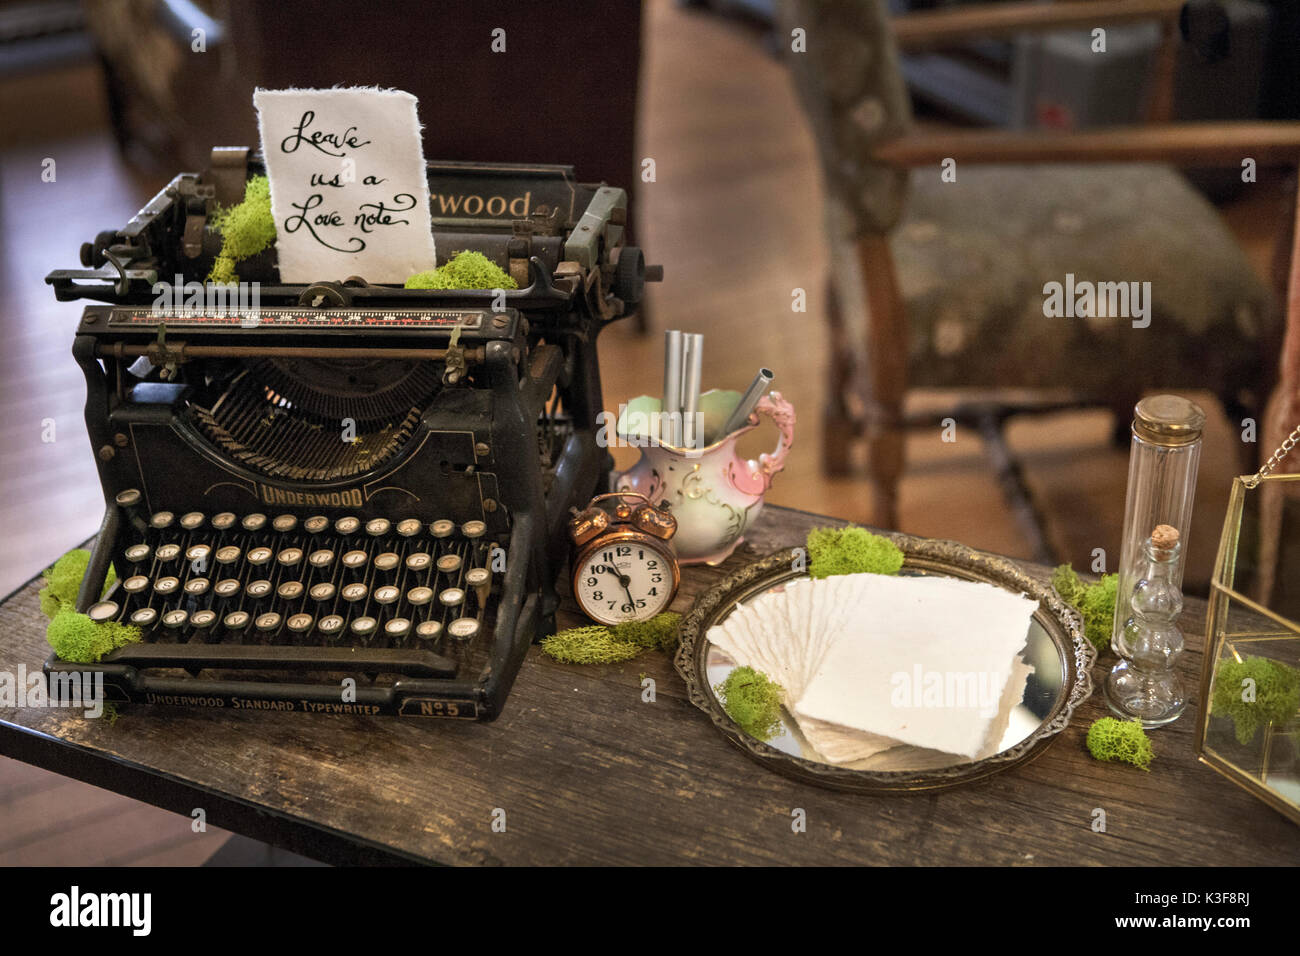 Old Typewrite with Hand Written Note - Stock Image